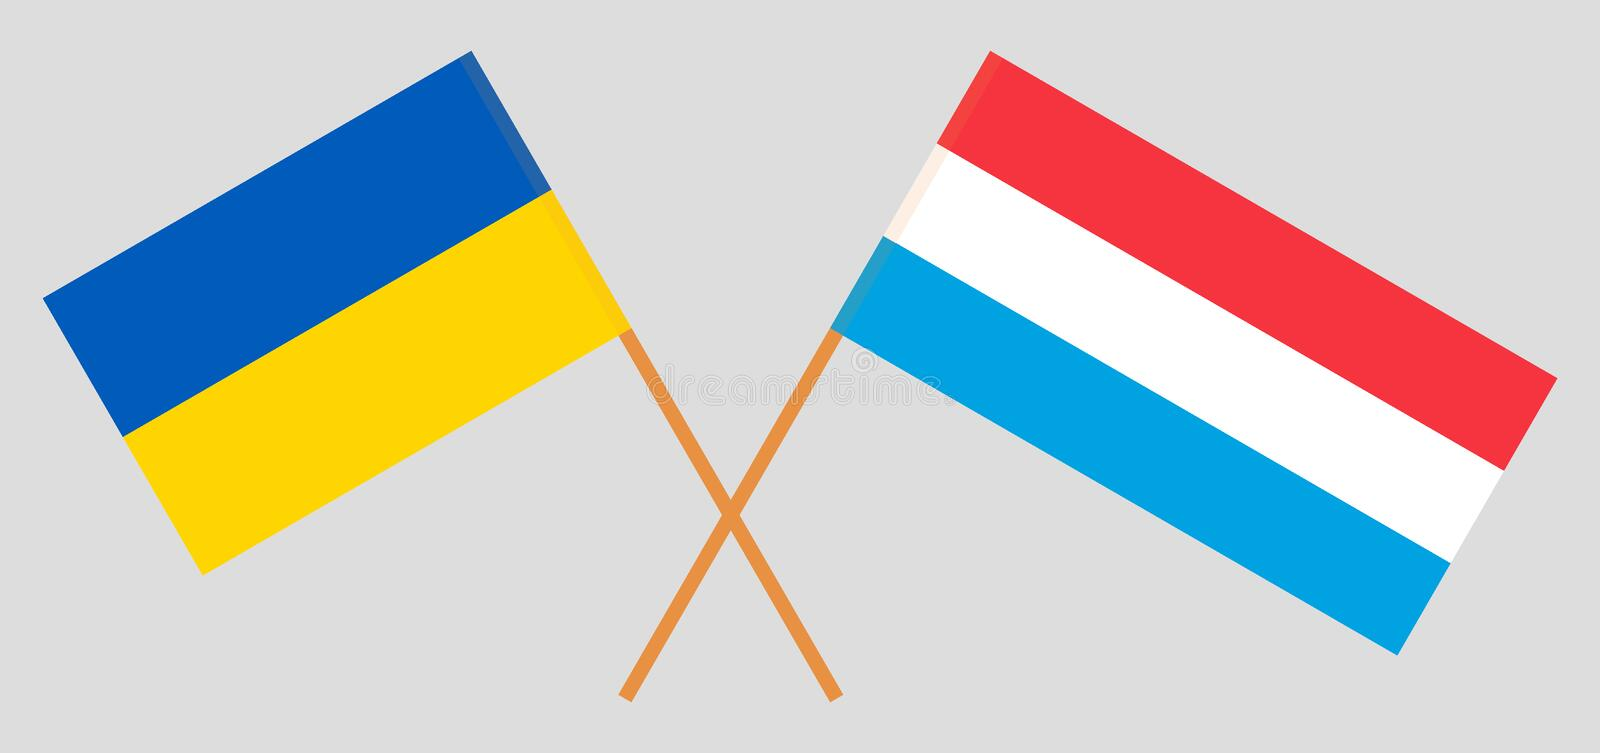 Luxembourg and Ukraine. The Luxembourgish and Ukrainian flags. Official proportion. Correct colors. Vector. Illustration vector illustration